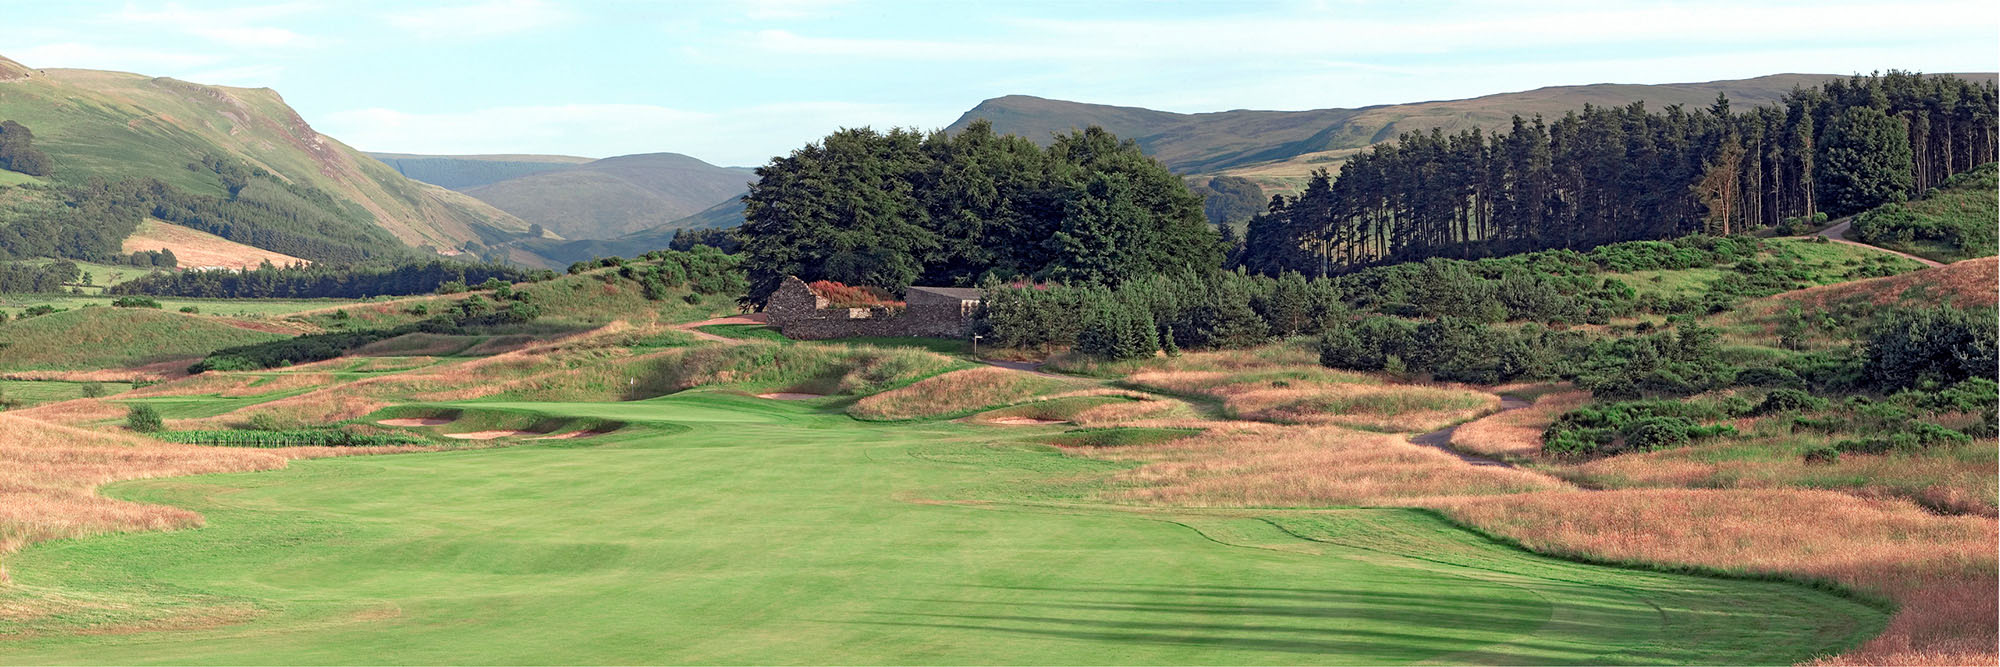 Golf Course Image - Gleneagles PGA Centenary Course No. 2